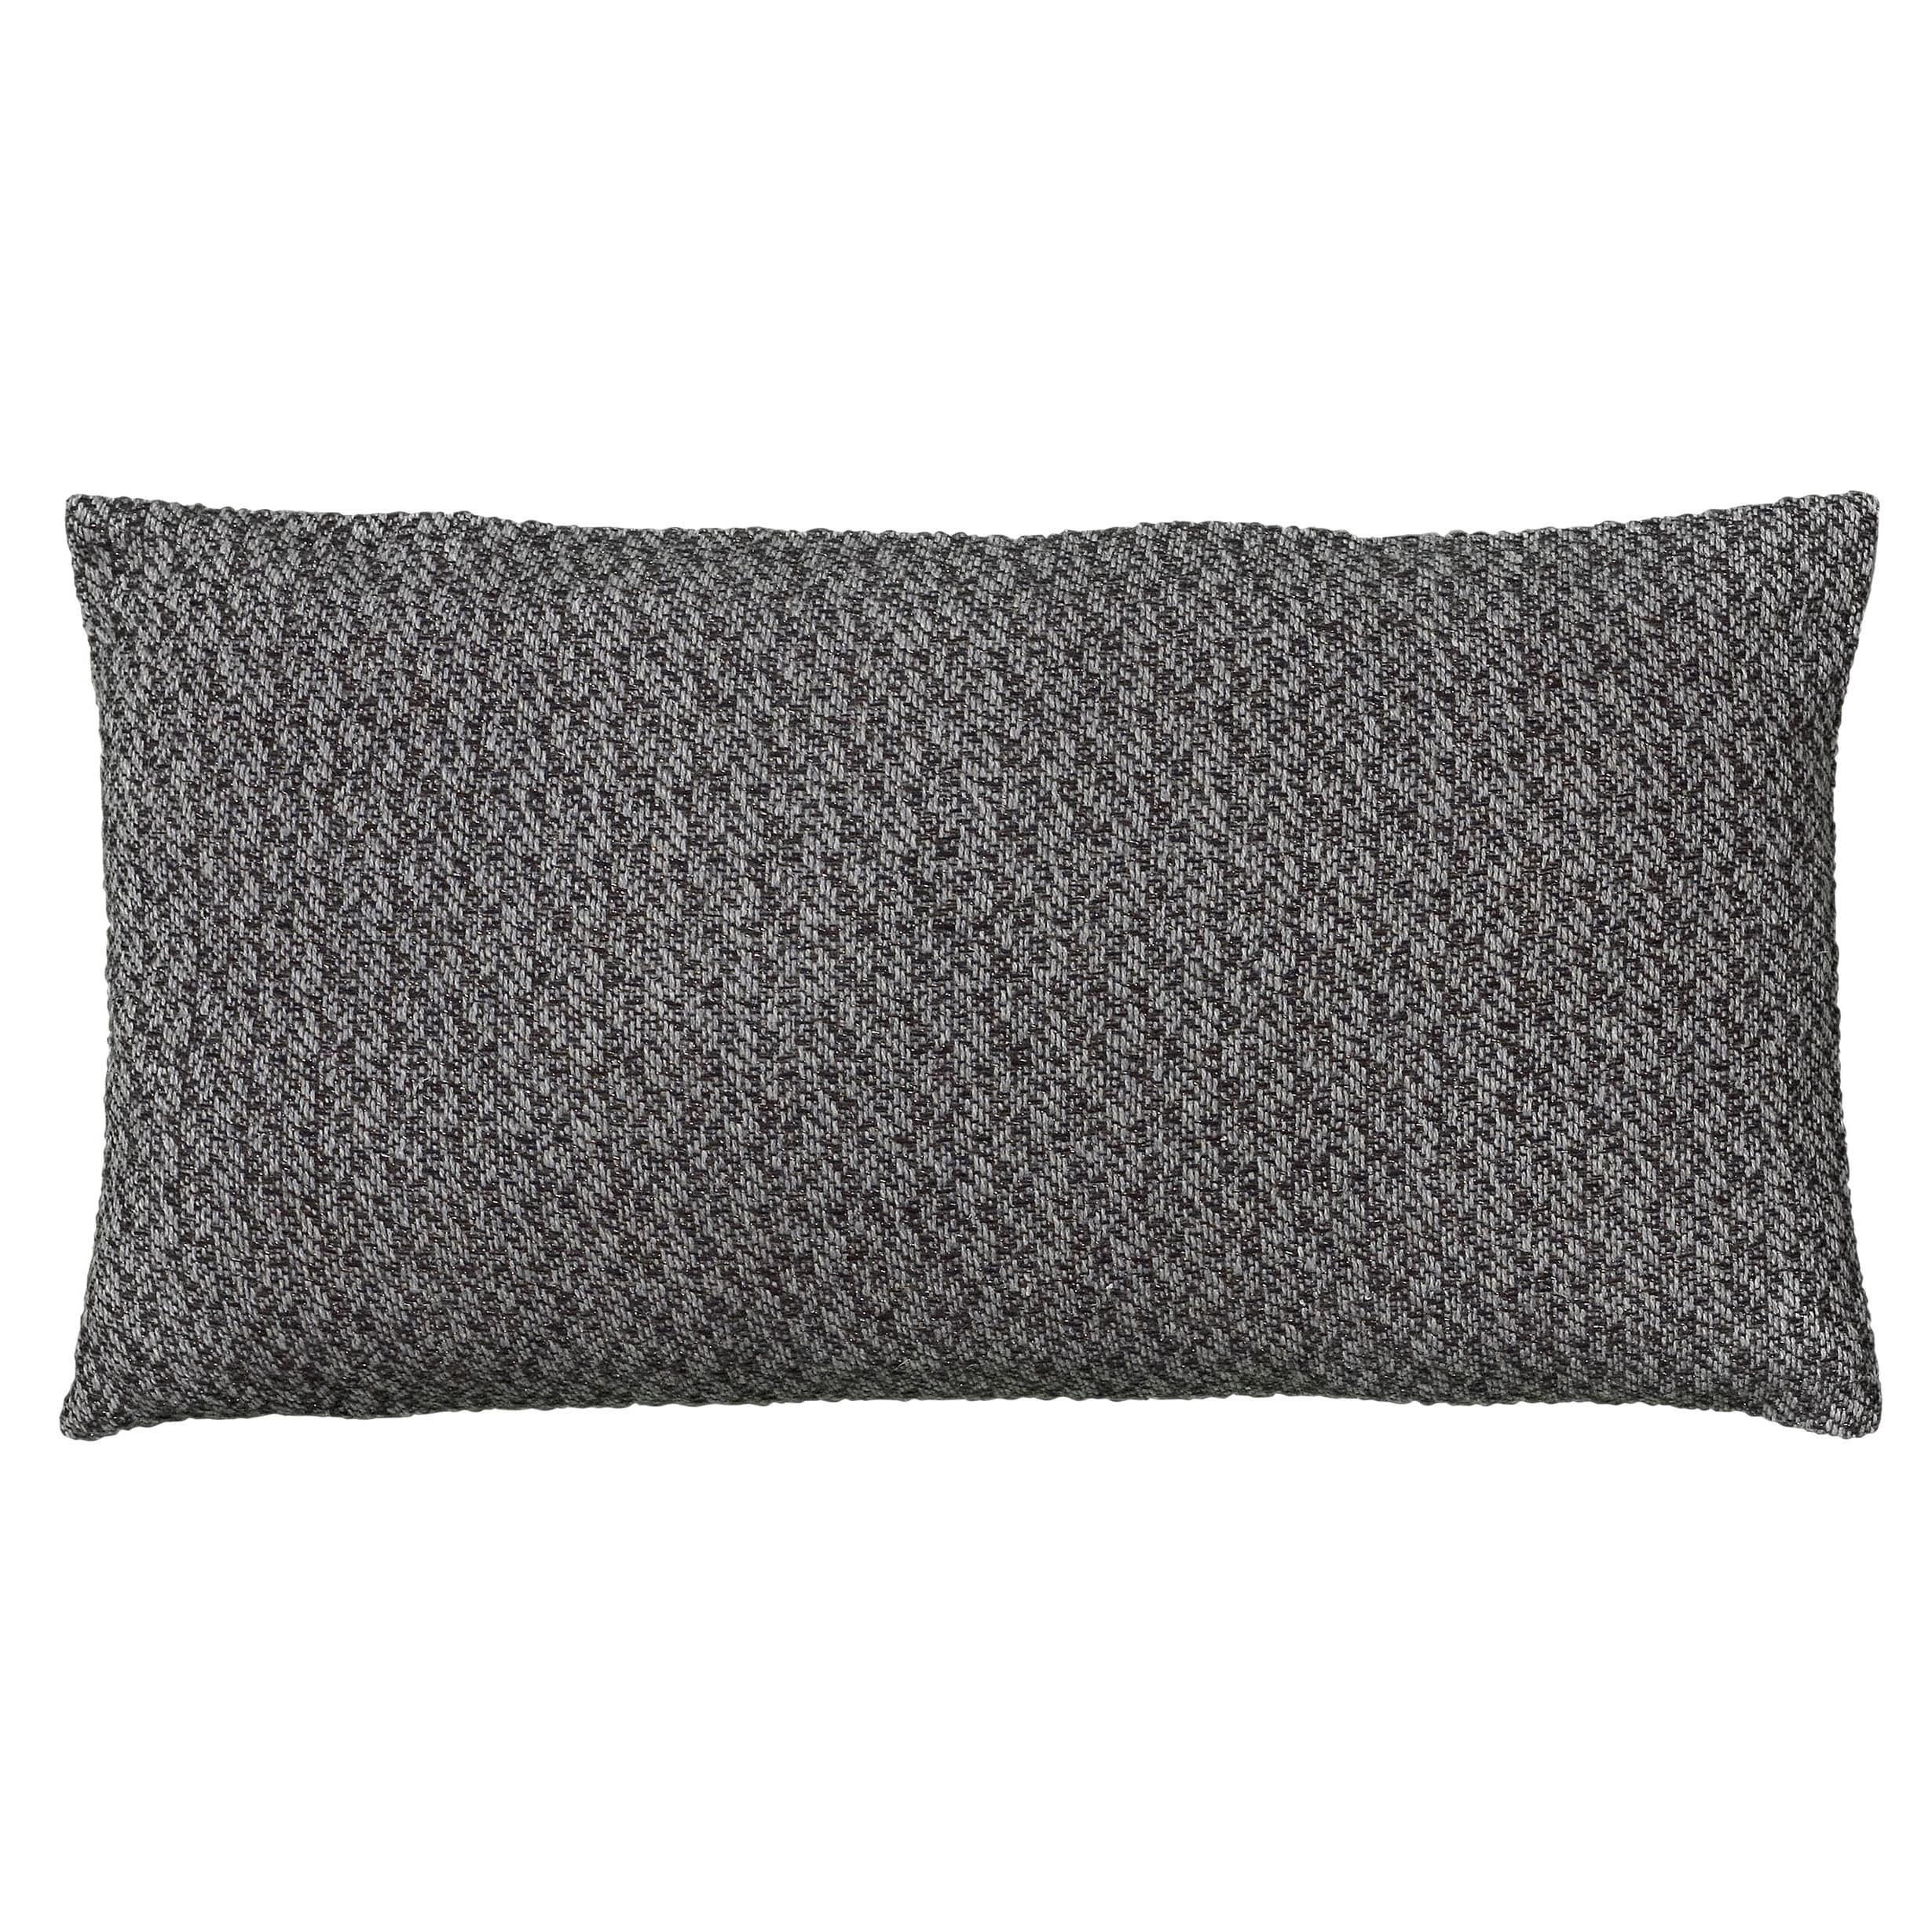 """Rizzy Rugs 11"""" x 21"""" Solid Accent Pillow (Grey), Size 11 ..."""